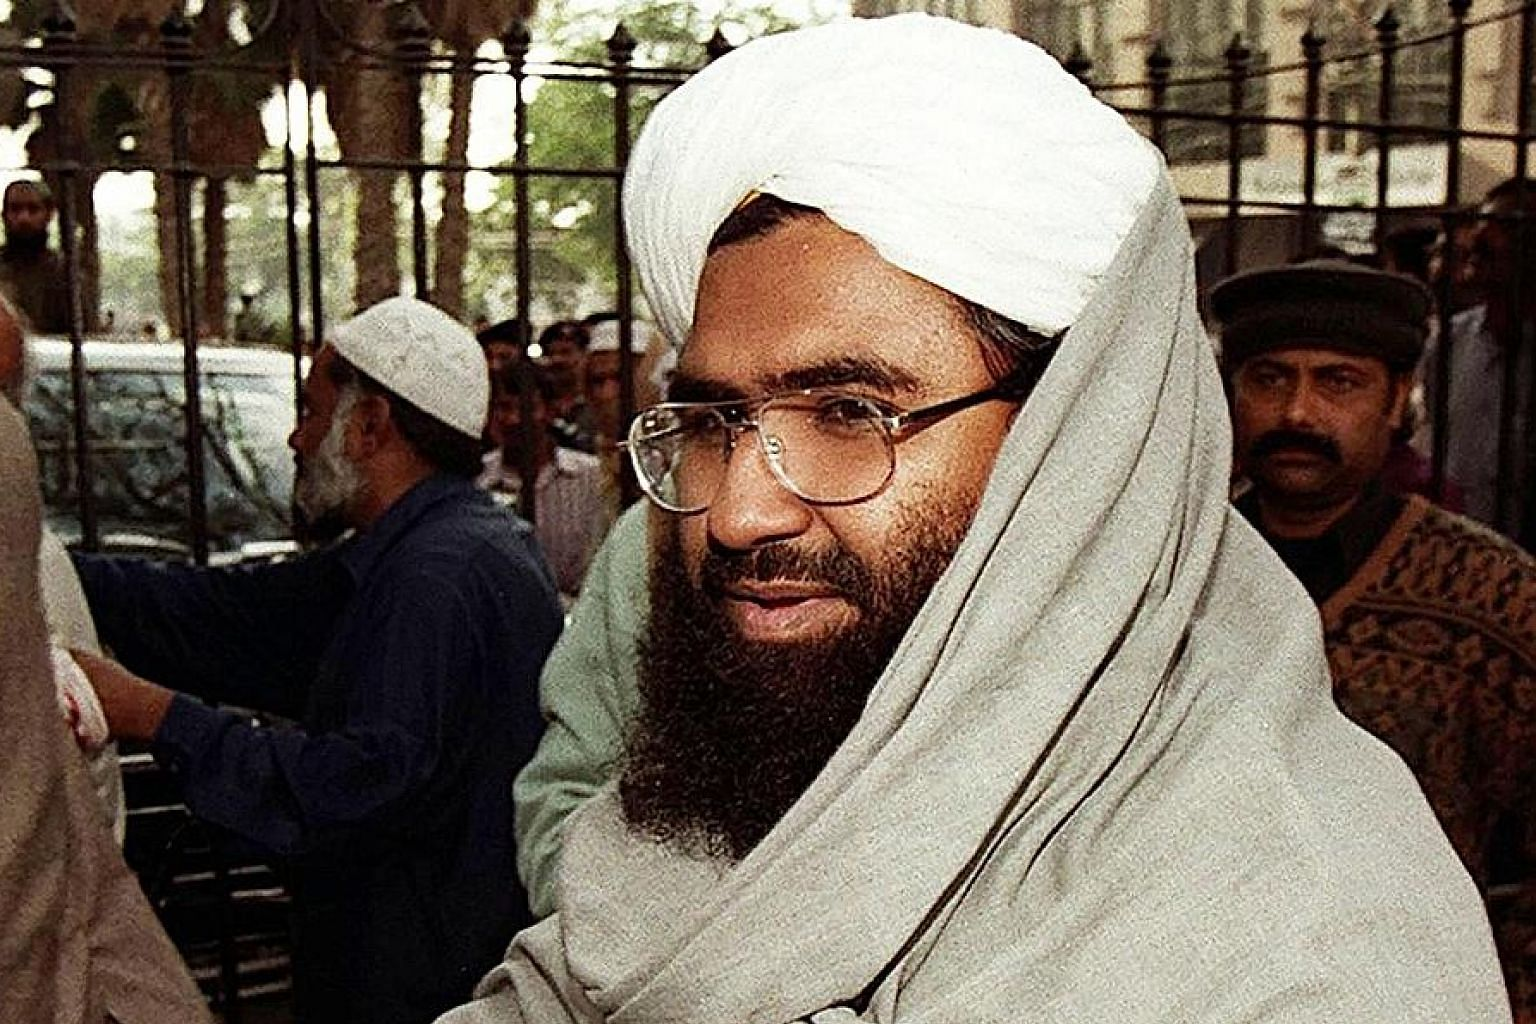 Masood Azhar, who is in Pakistan, is wanted in India for terror strikes including the suicide bombing in Kashmir.